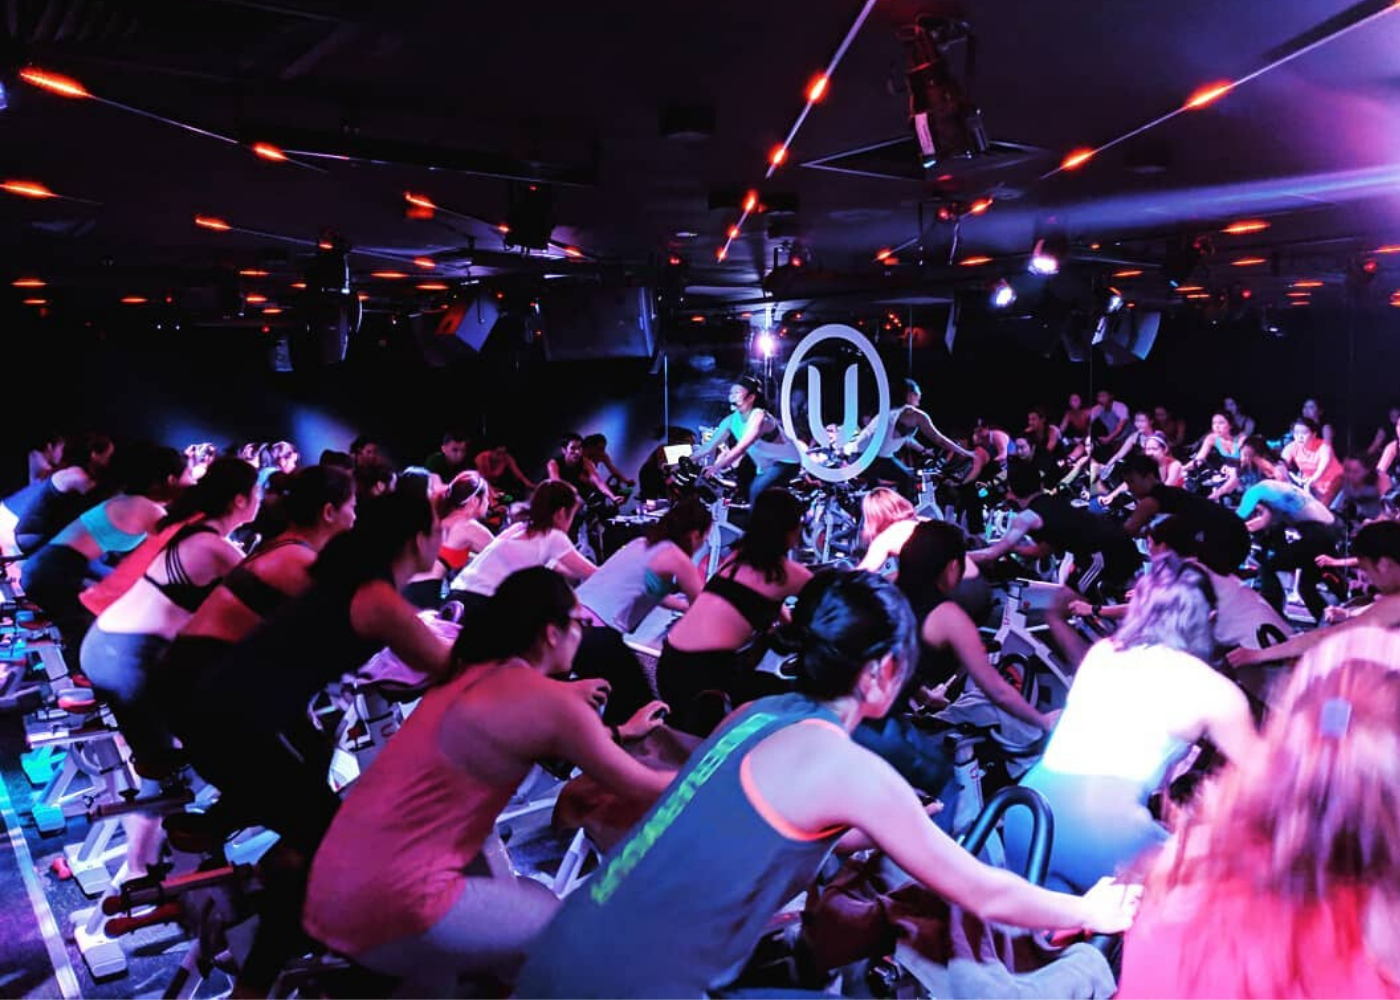 Pedal to the metal: Cycle your way to fitness at these spinning classes